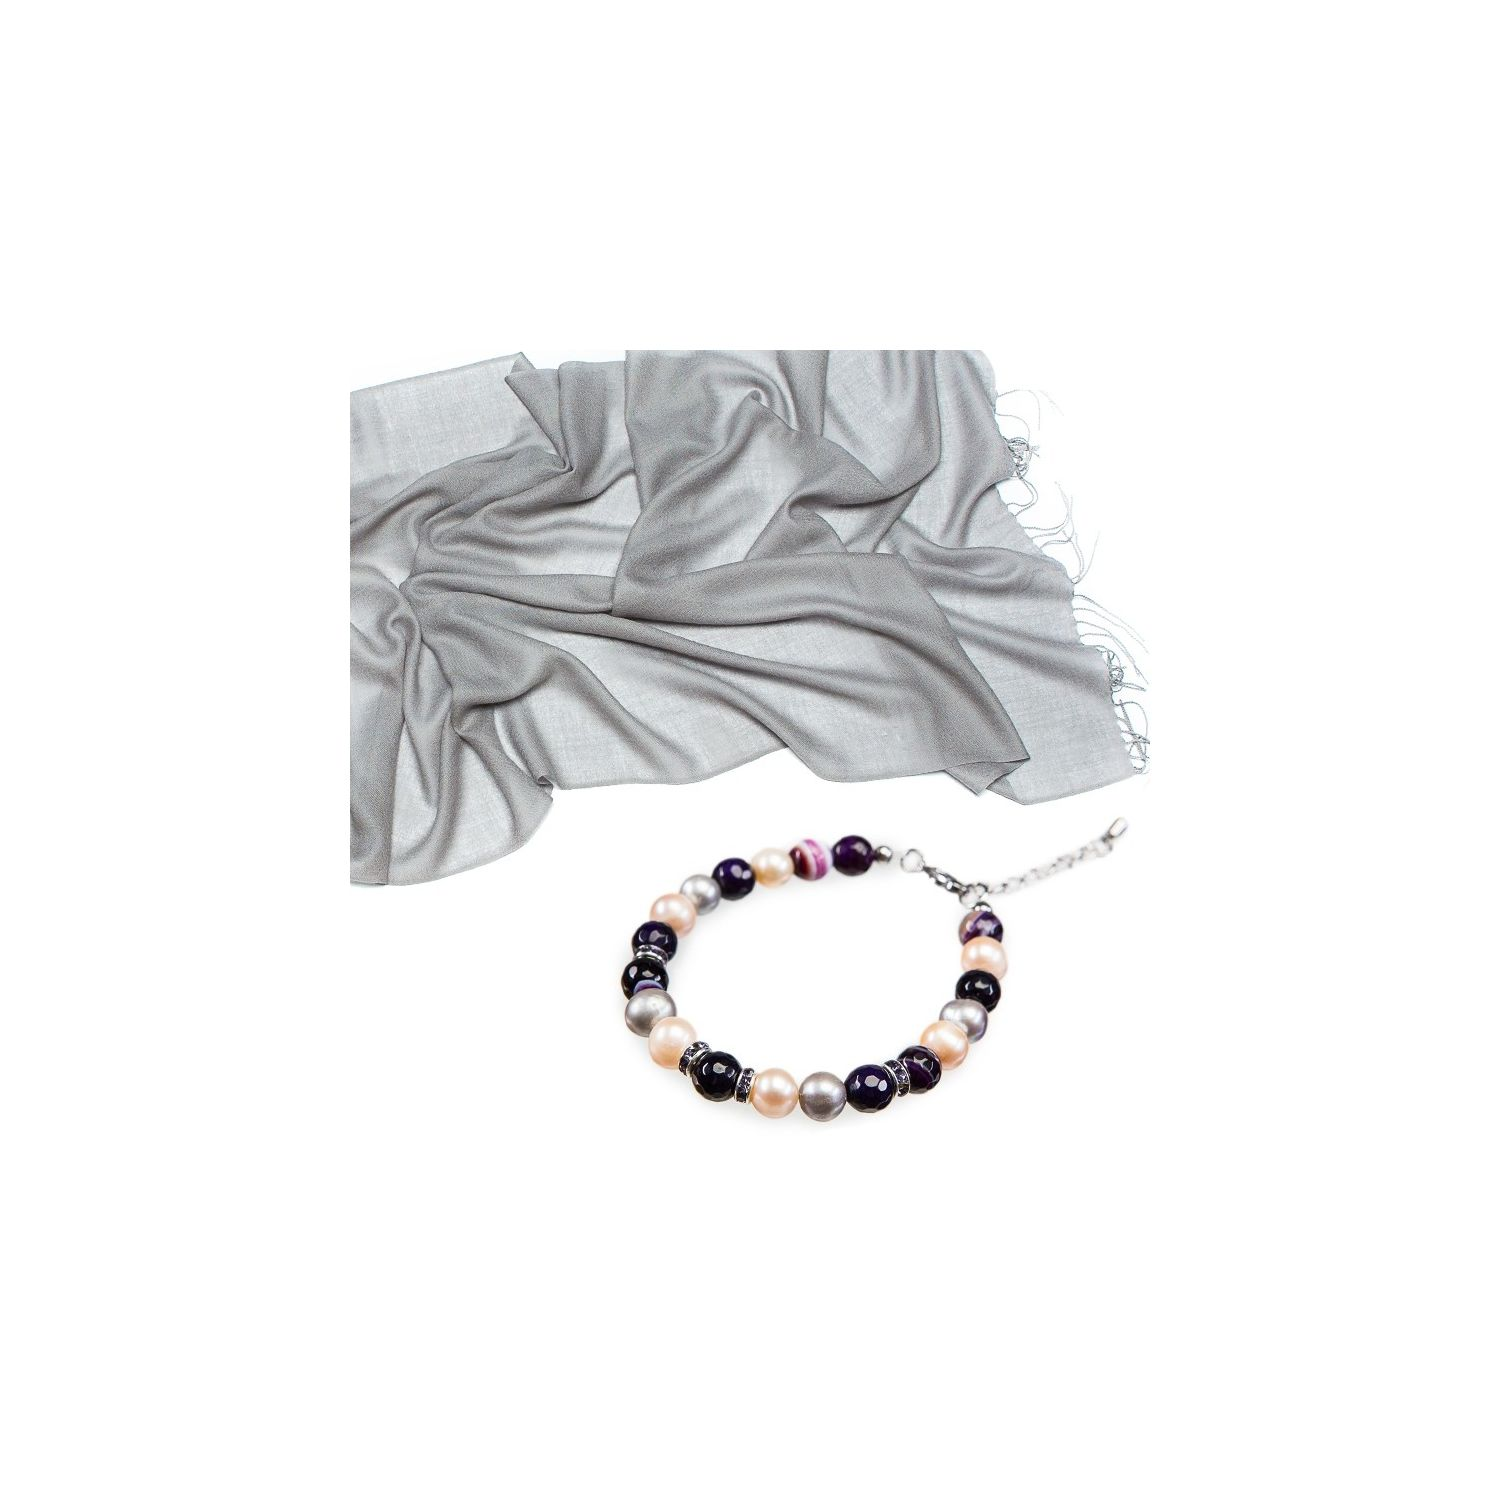 GIFT: Mila Schon gray wool scarf and purple lace agate bracelet